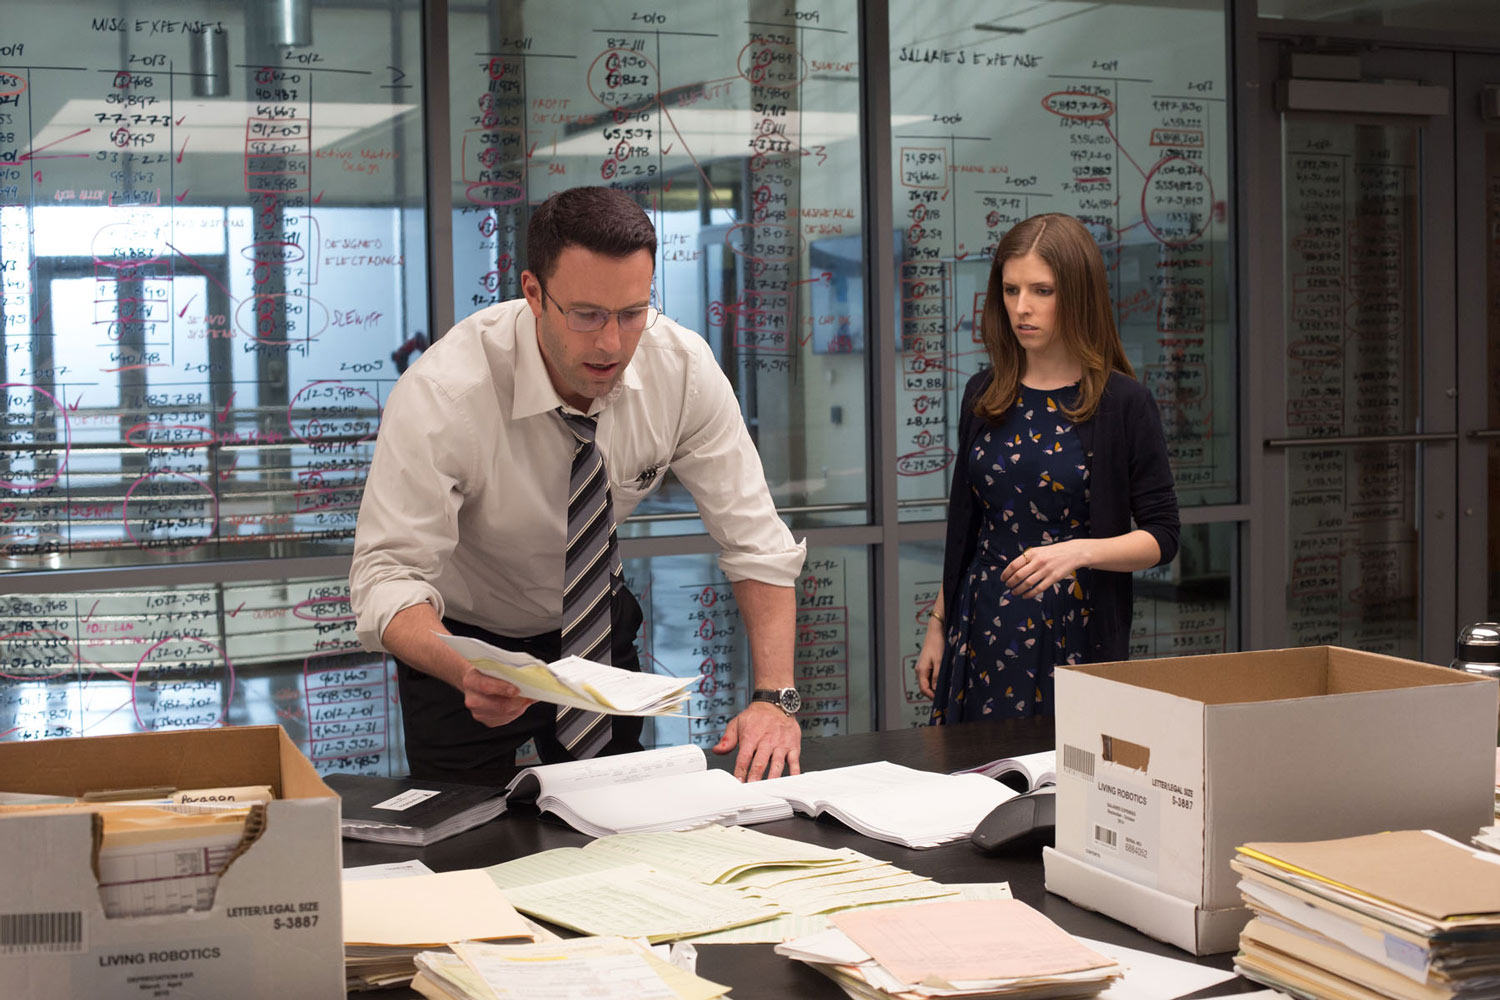 MOVIES: The Accountant - Review